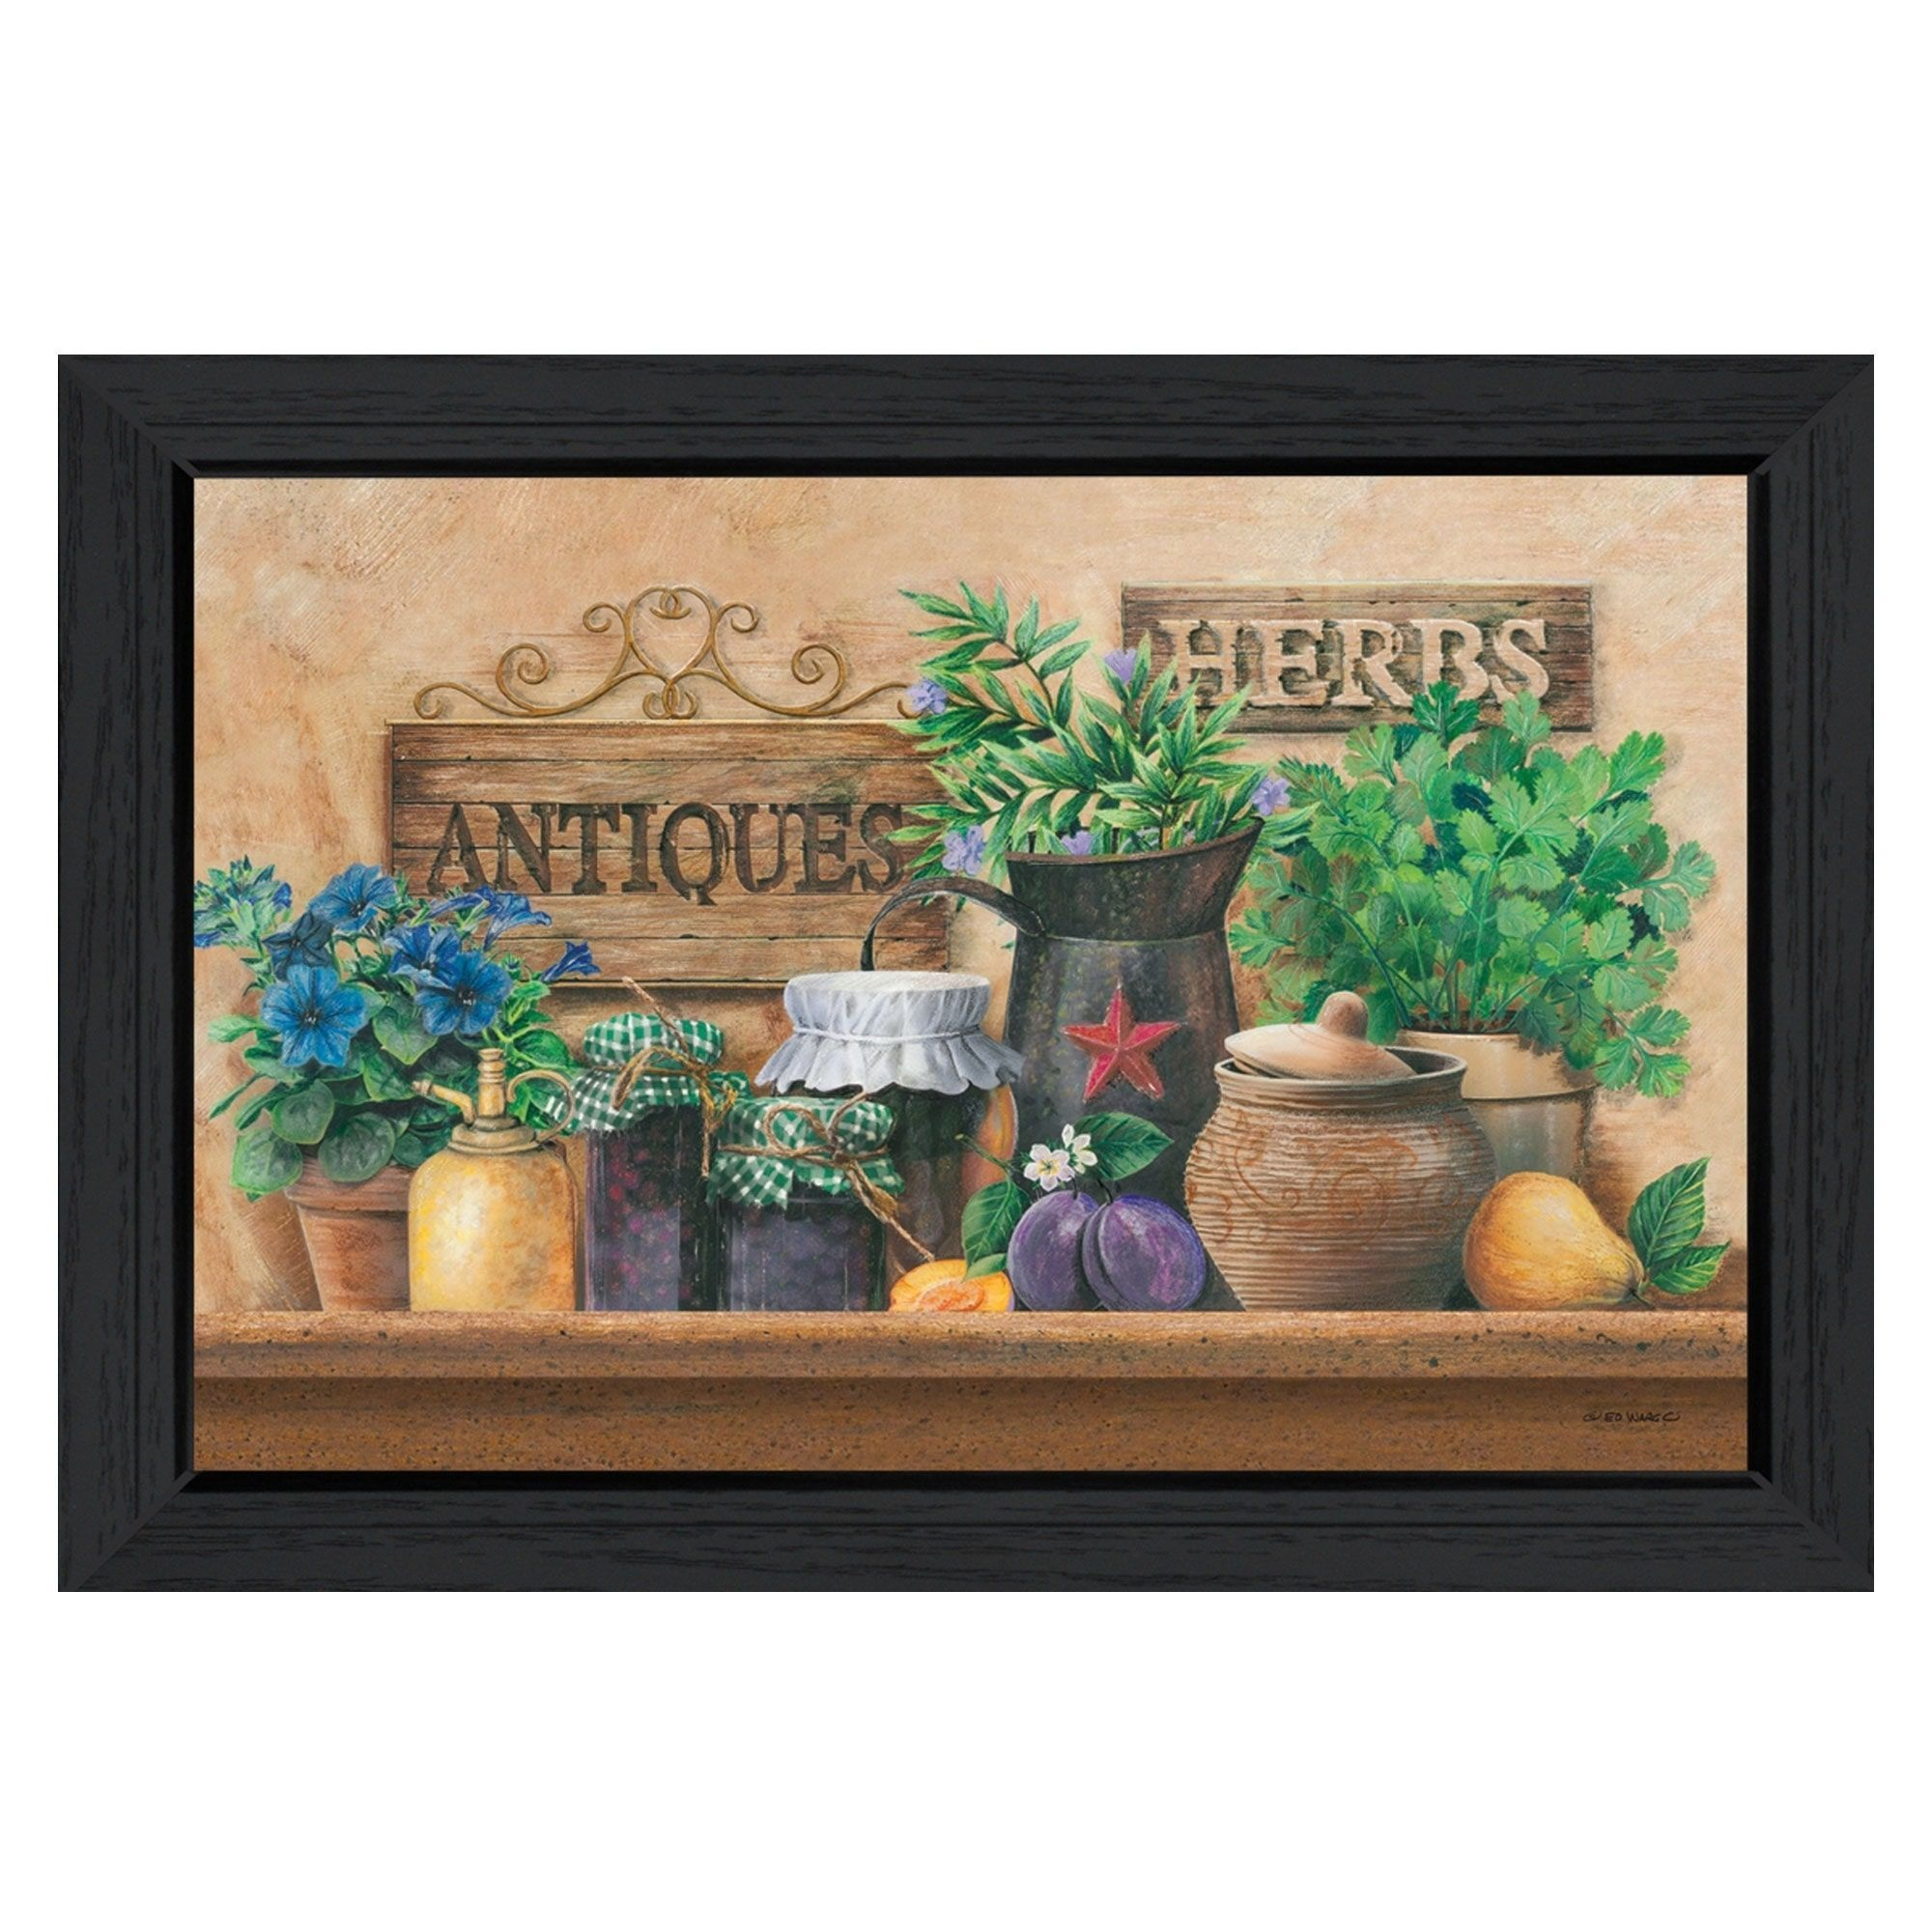 """Antiques and Herbs"" By Ed Wargo, Printed Wall Art, Ready"